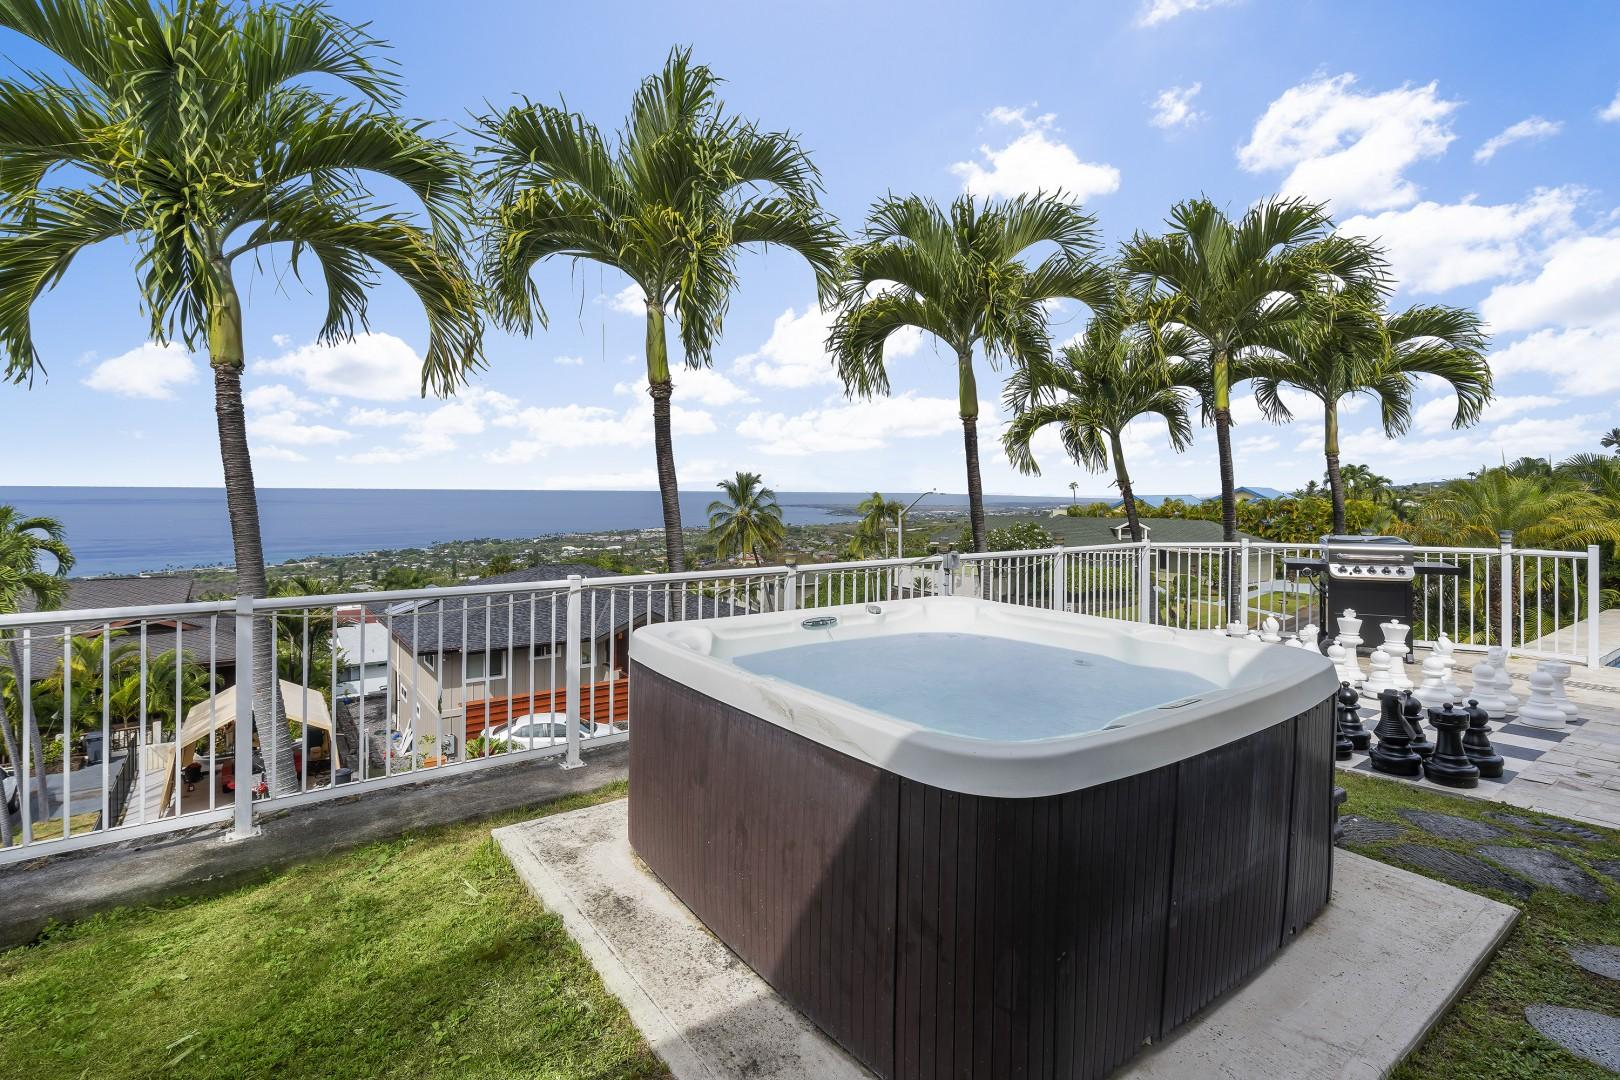 Enjoy the private hot tub with your favorite beverage!